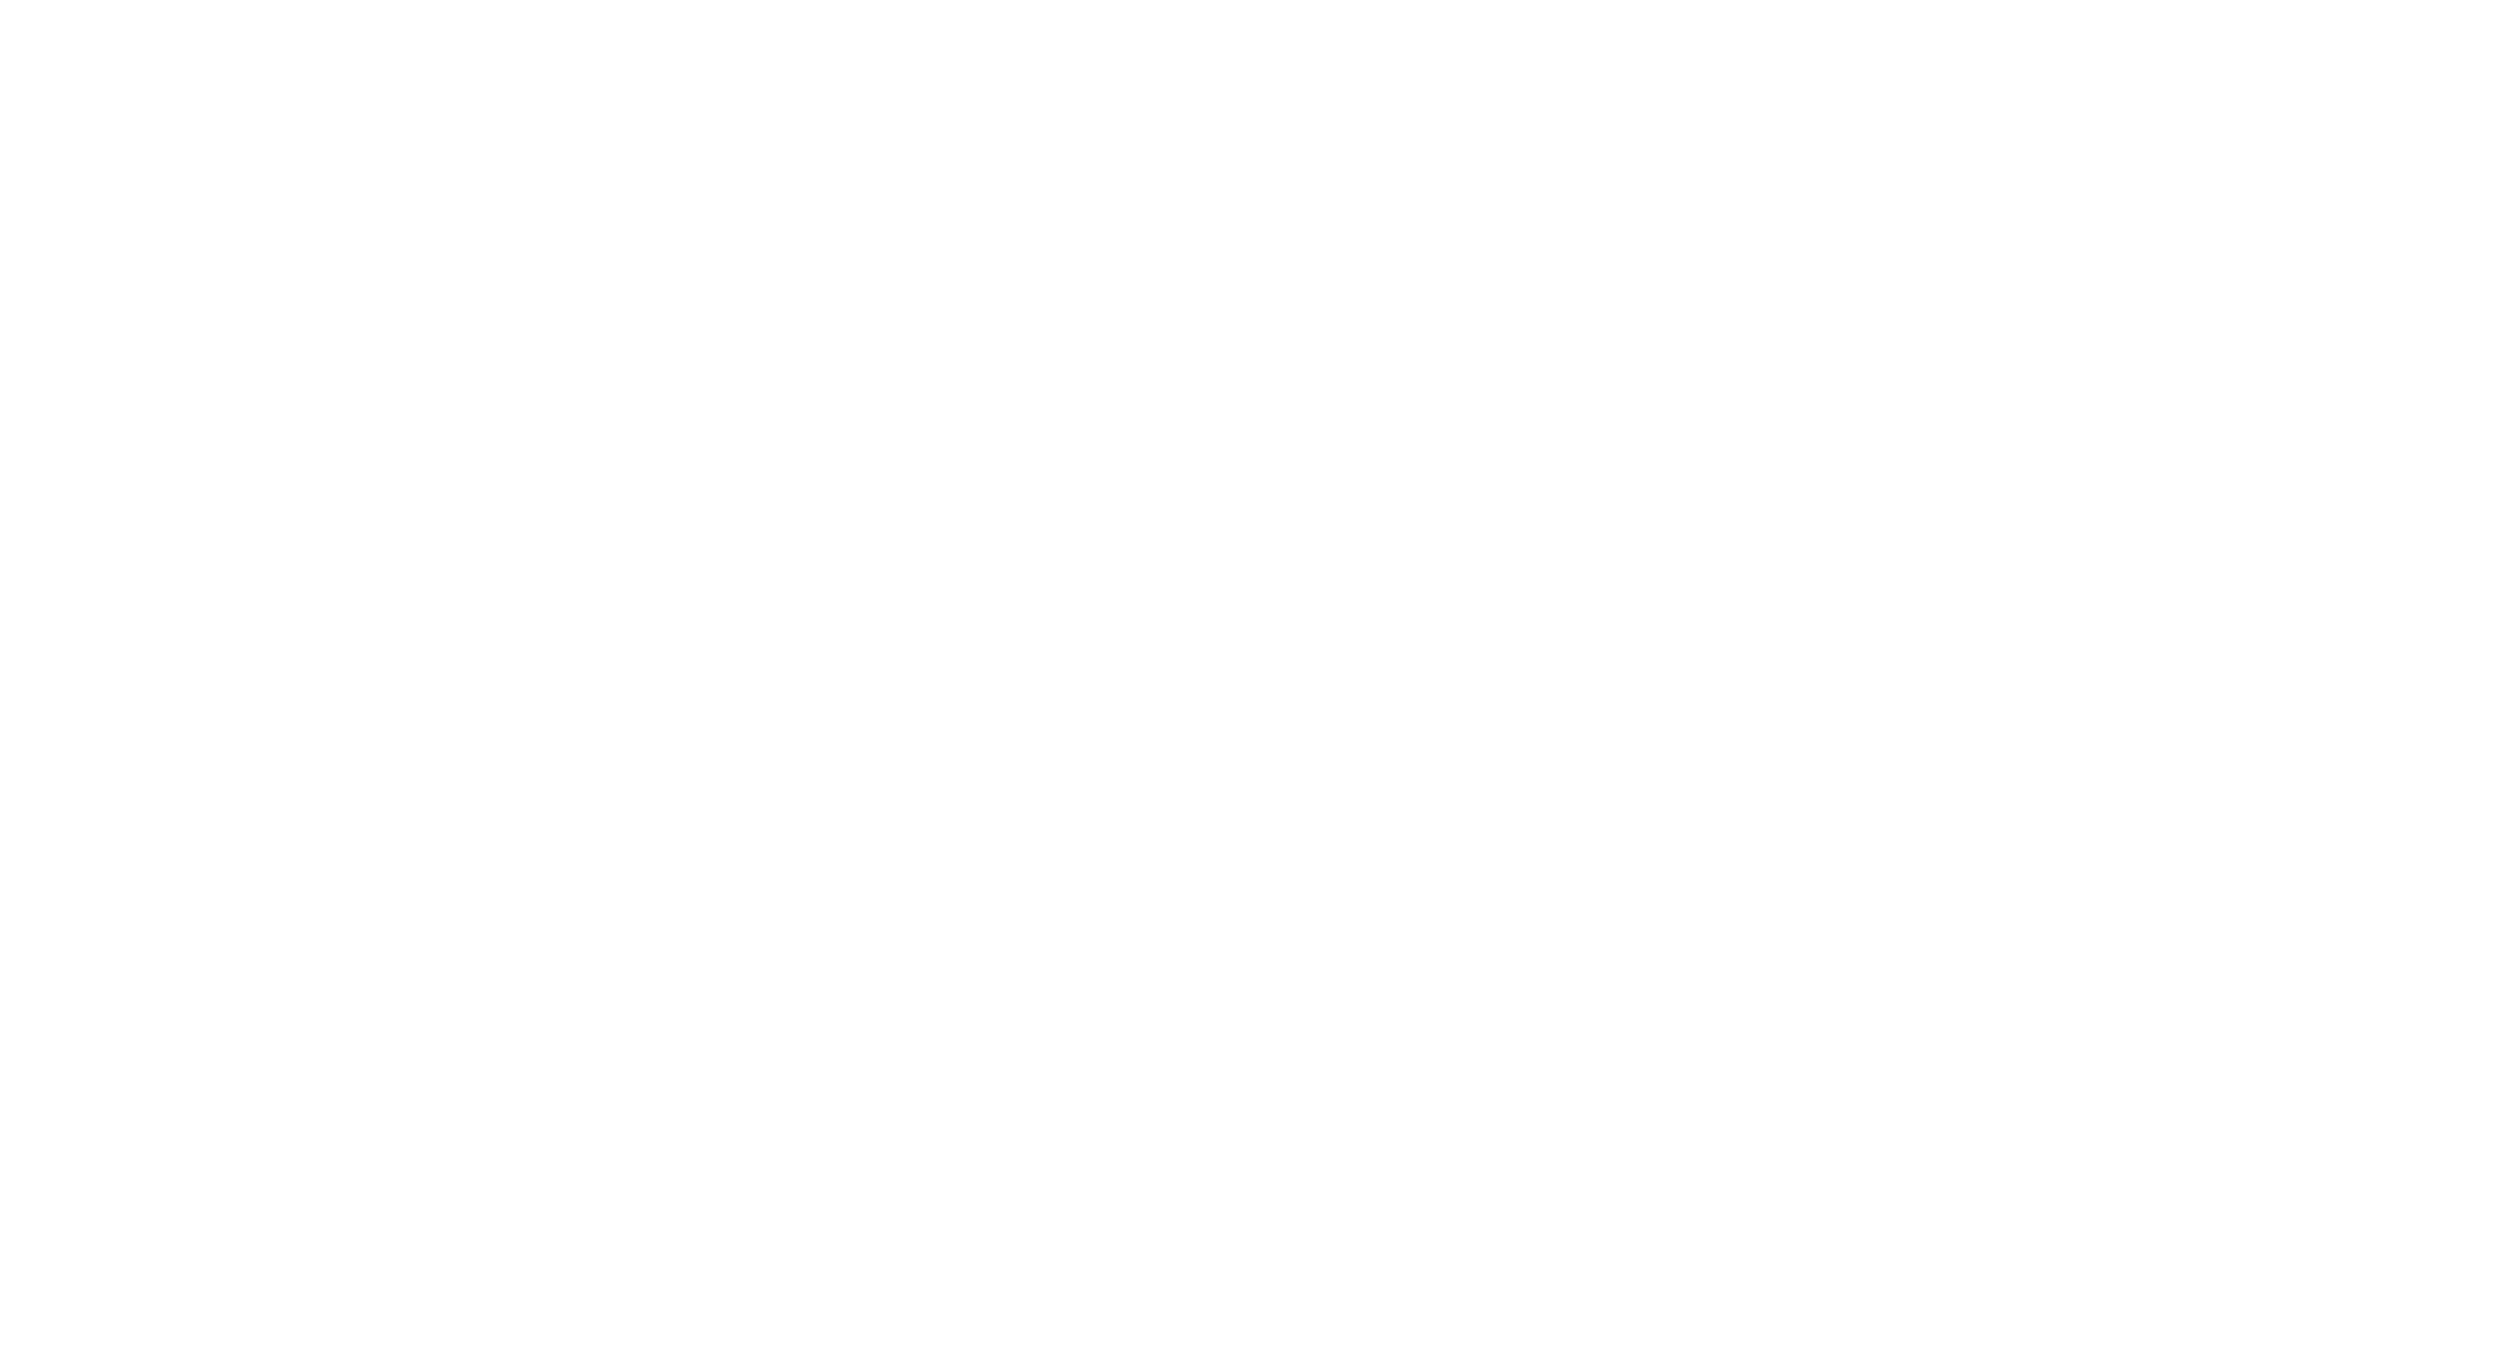 Charleston West Virginia Convention and Visitors Bureau - Provides lists of places to stay, play and dine in Charleston, WV as well as a blog following news and happenings.